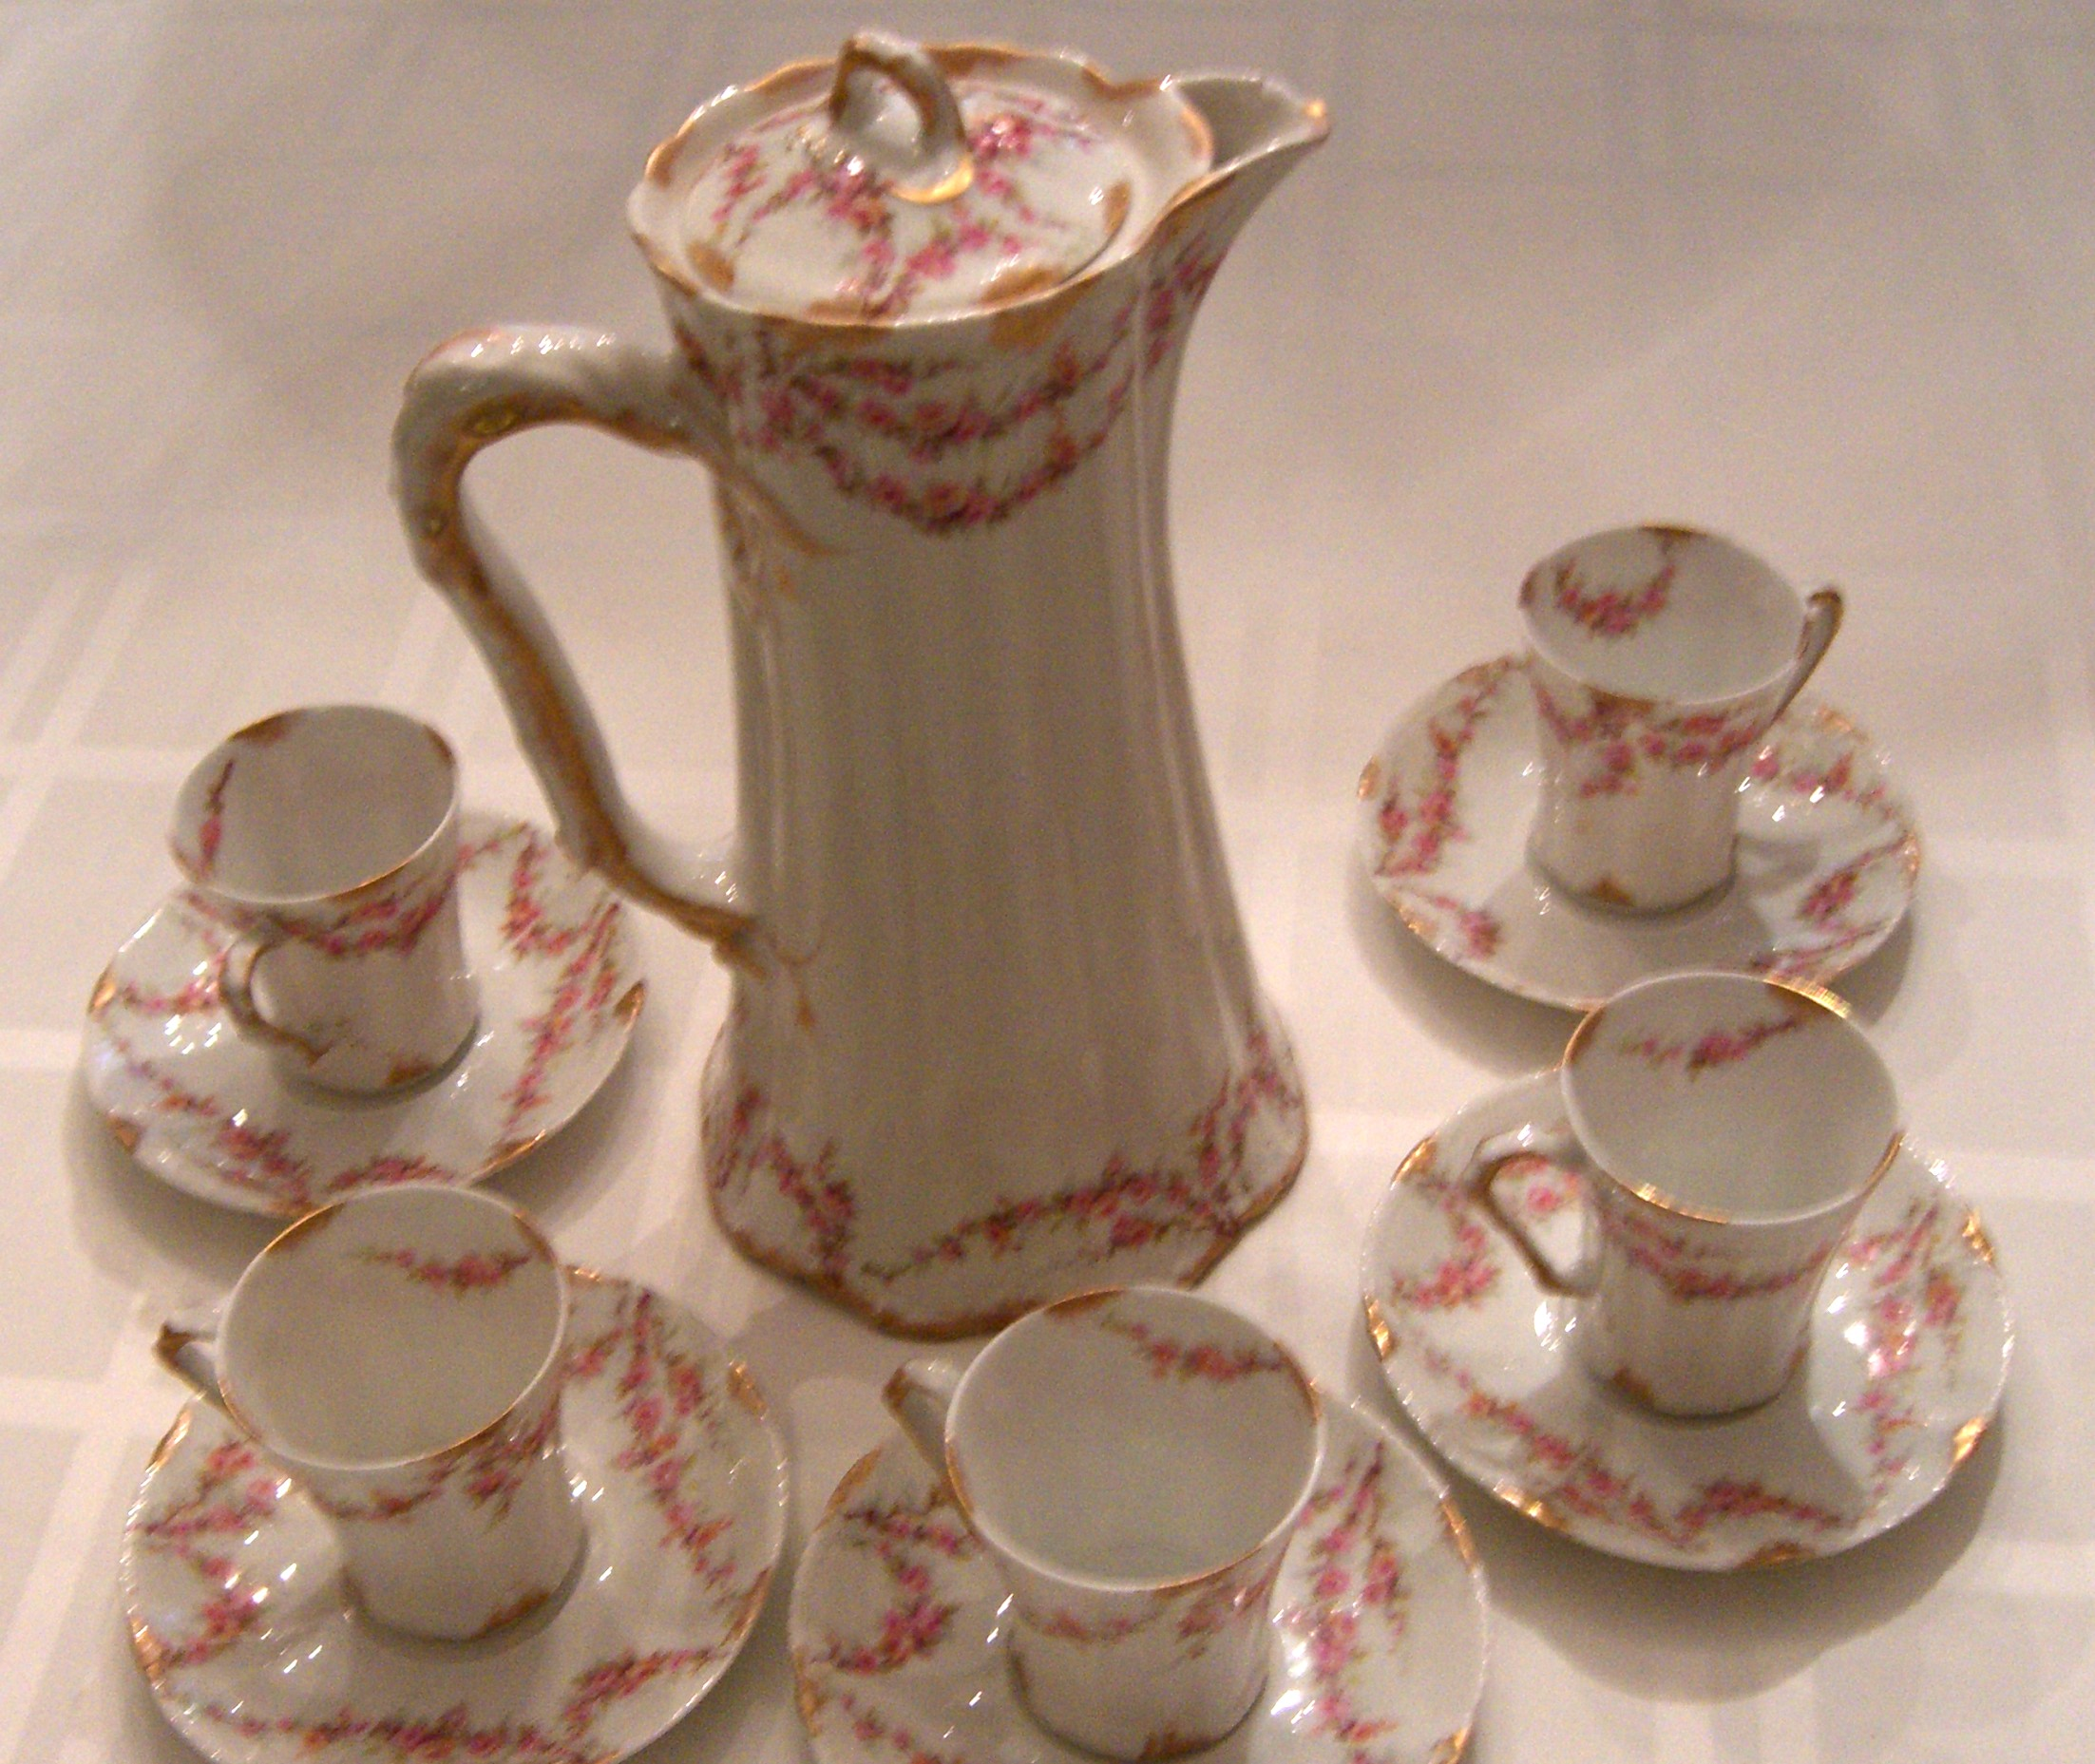 File:limoges Chocolate Set.jpg